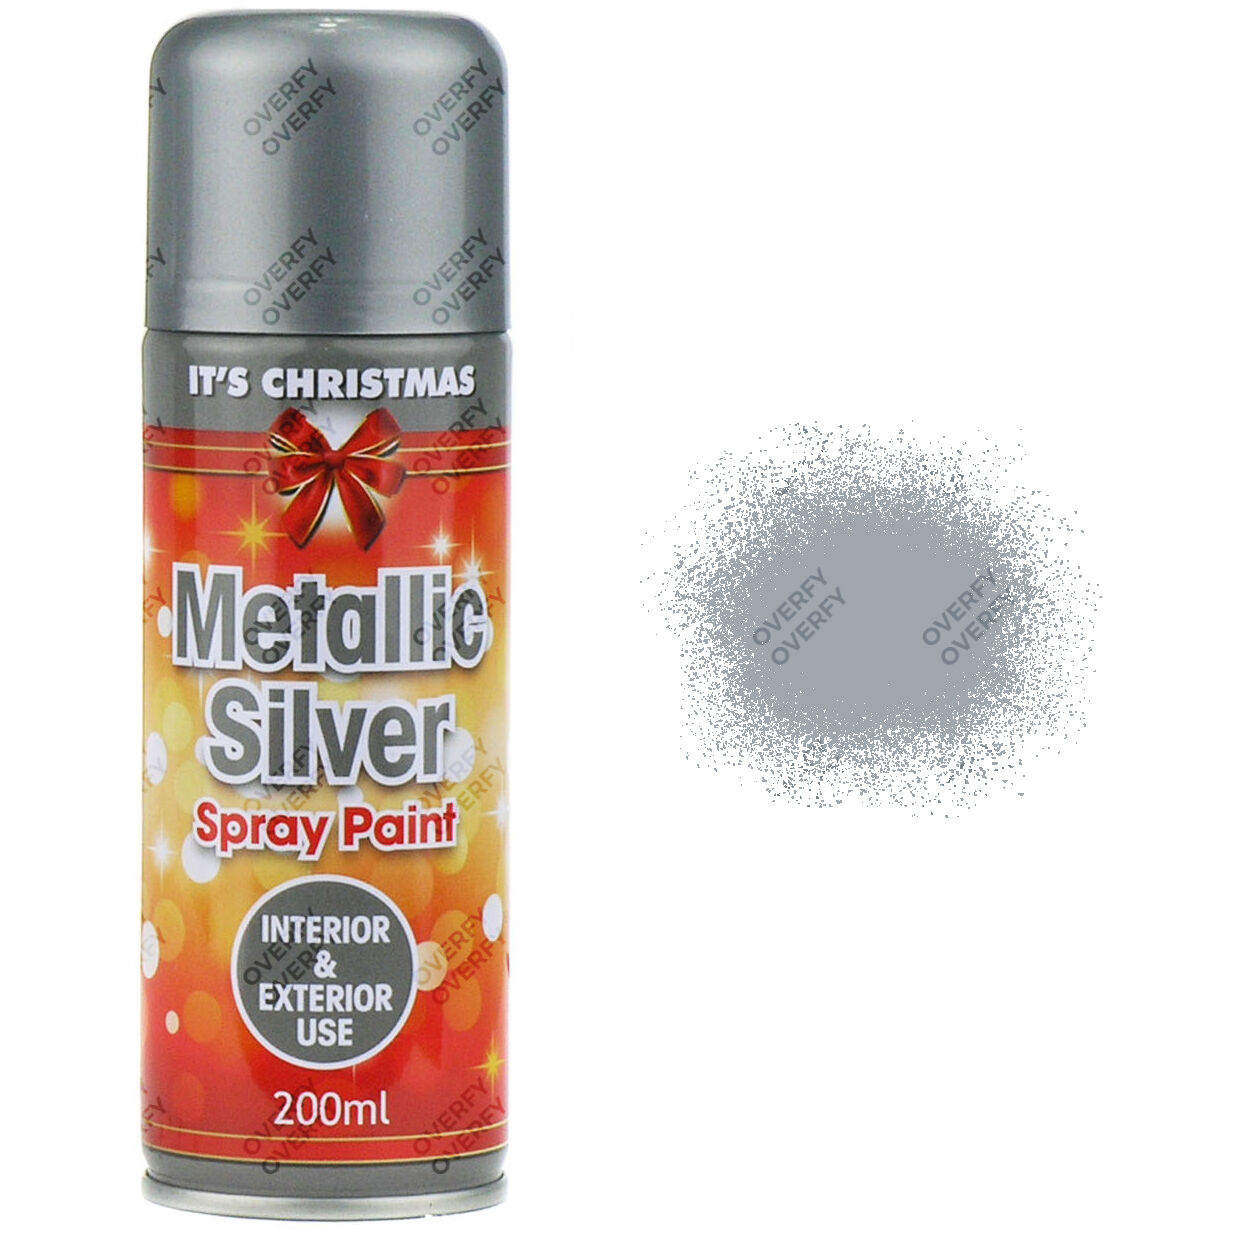 Metallic Silver Spray Paint Interior/Exterior Spray Aerosol Christmas Part 53